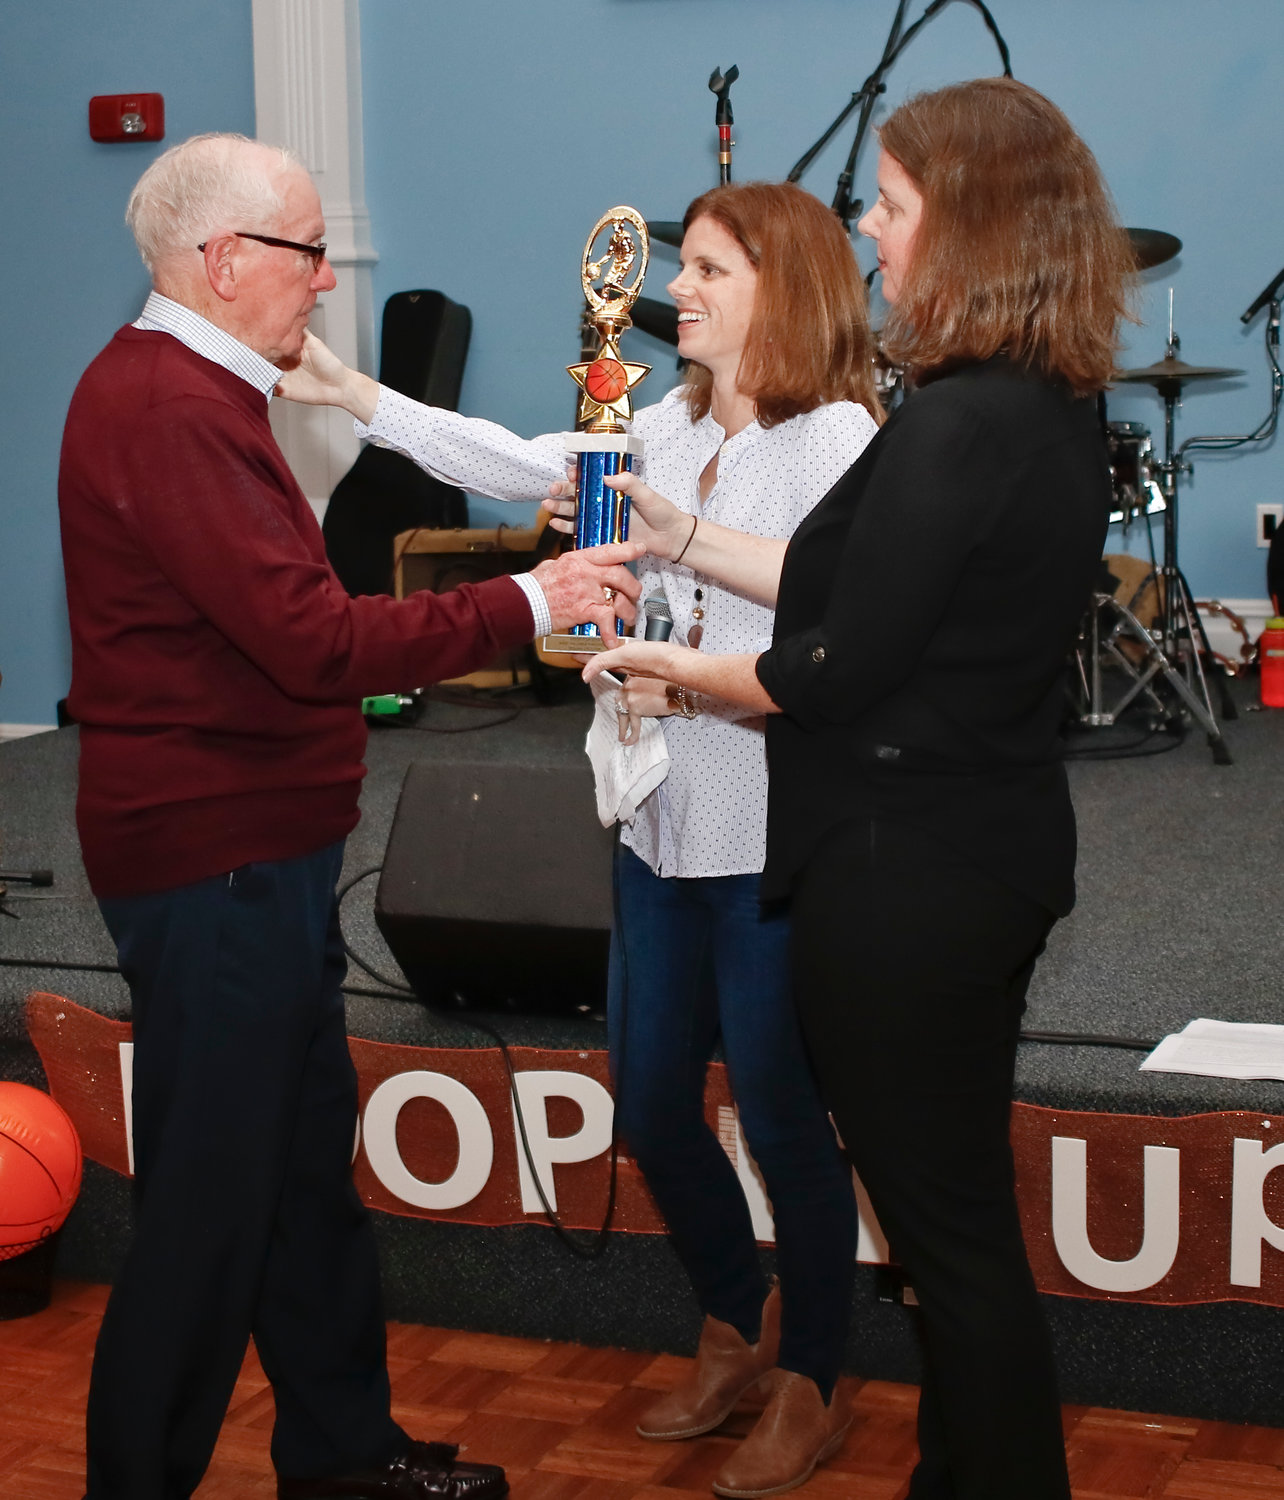 William Croutier's granddaughters, Jennifer Muldoon and Maggie Regan, presented him with an MVP (most valuable parishioner) trophy at the dinner in his honor.